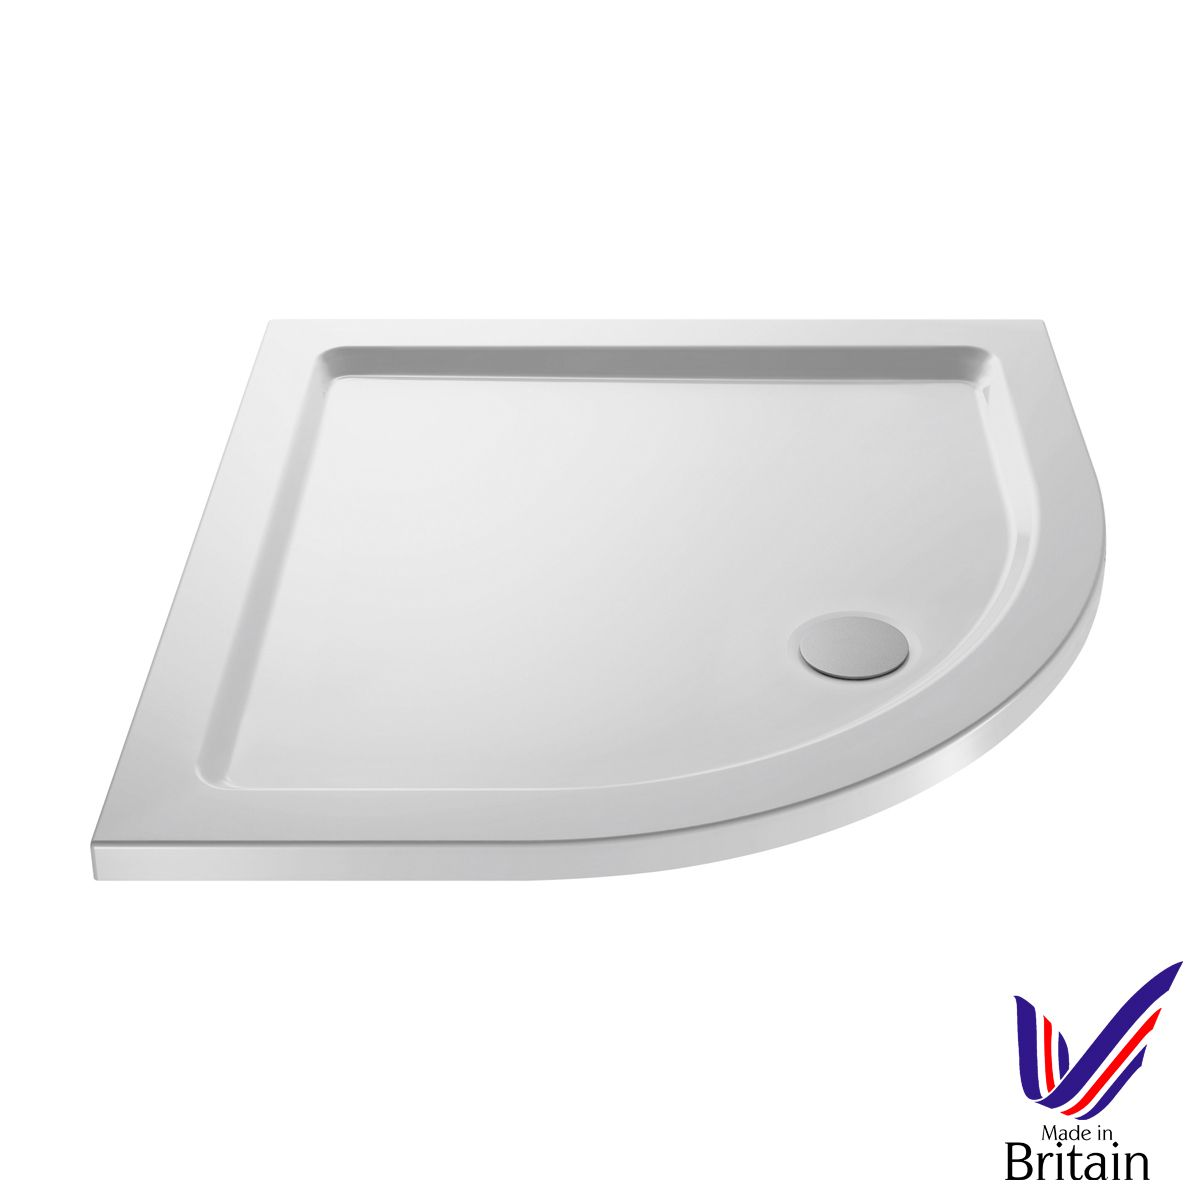 1000 x 1000 Shower Tray Quadrant Low Profile by Pearlstone